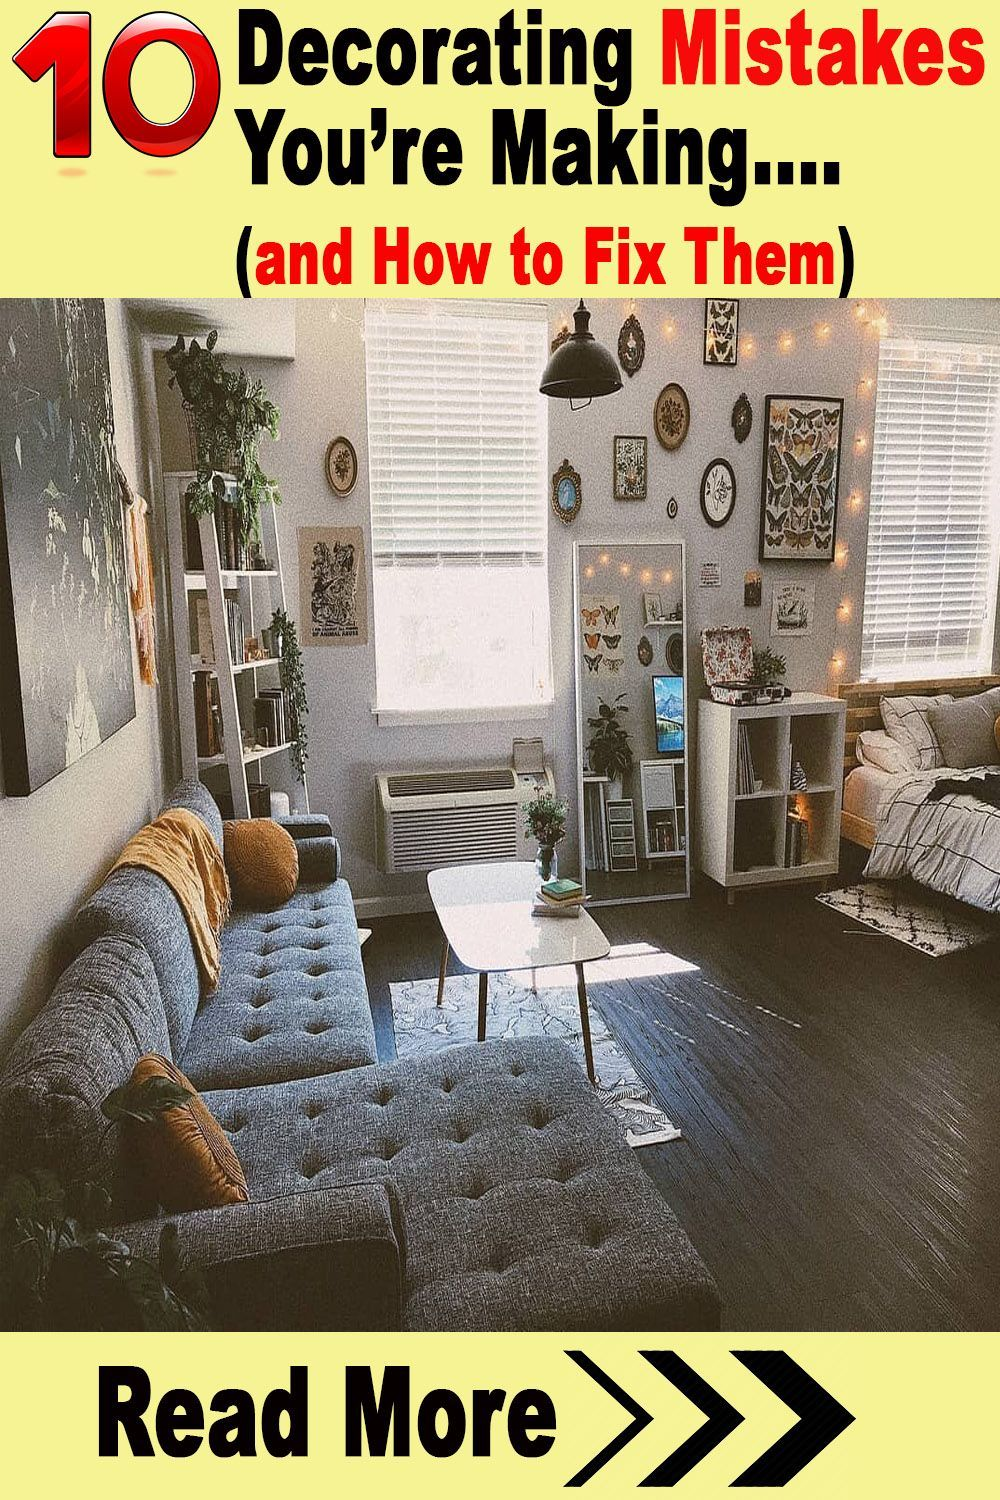 home decor themes #homedecor Most people put a lot of thought behind how theyll decorate their homes. Its a pretty exciting task with all the themes, color schemes and excuses to buy really cool accent pieces. But did you know that your dcor can actually cause your house to look cluttered